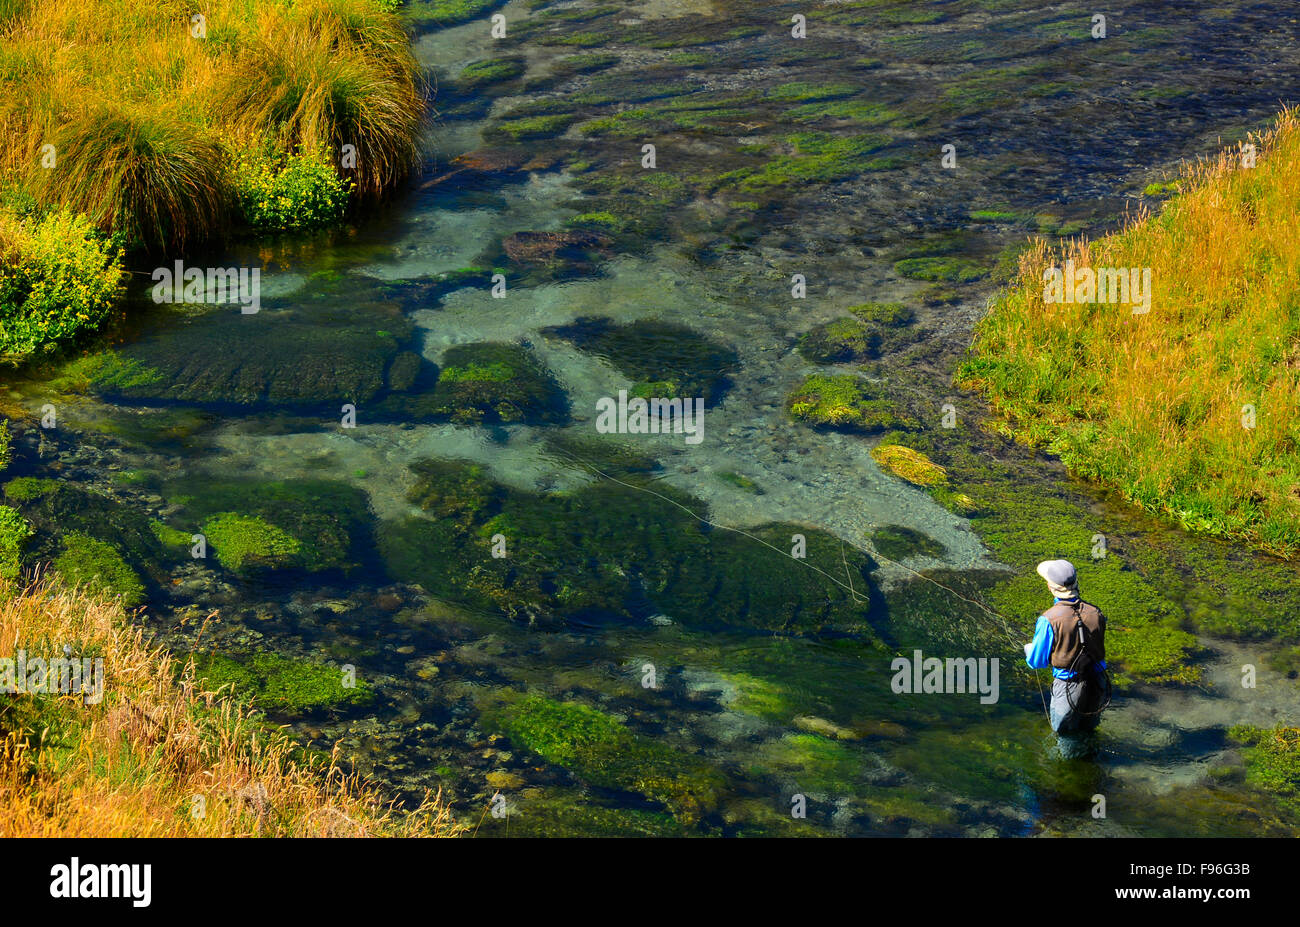 Man fly fishing in a river in New Zealand, Spring Creek - Stock Image